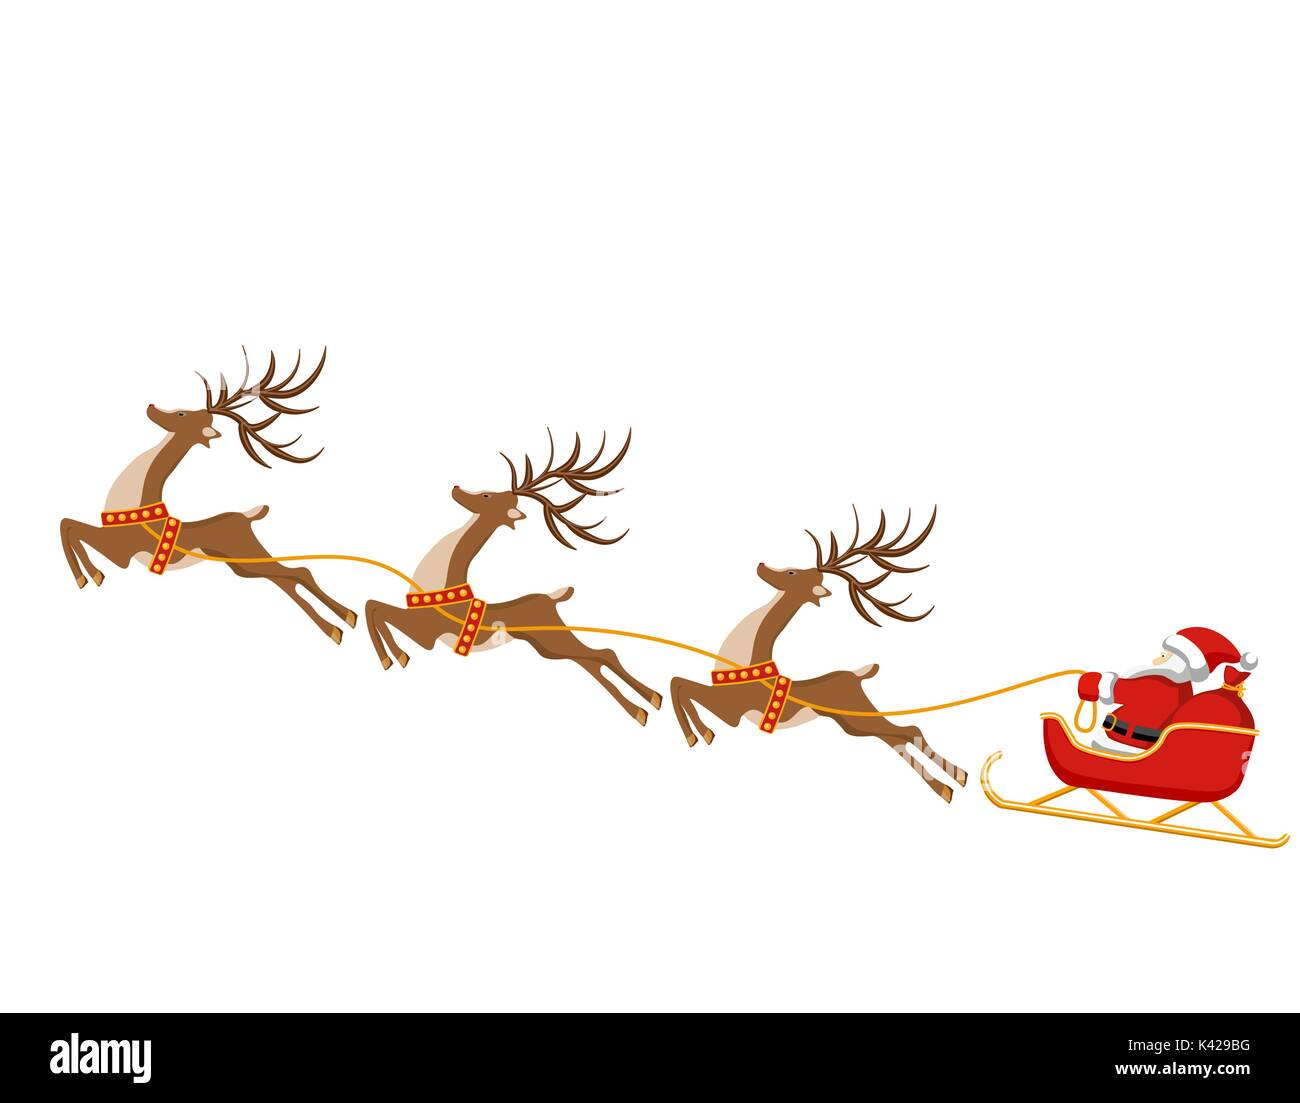 new year christmas drawing of deer and sleigh of santa claus in stock vector image art alamy https www alamy com new year christmas drawing of deer and sleigh of santa claus in color image157403220 html